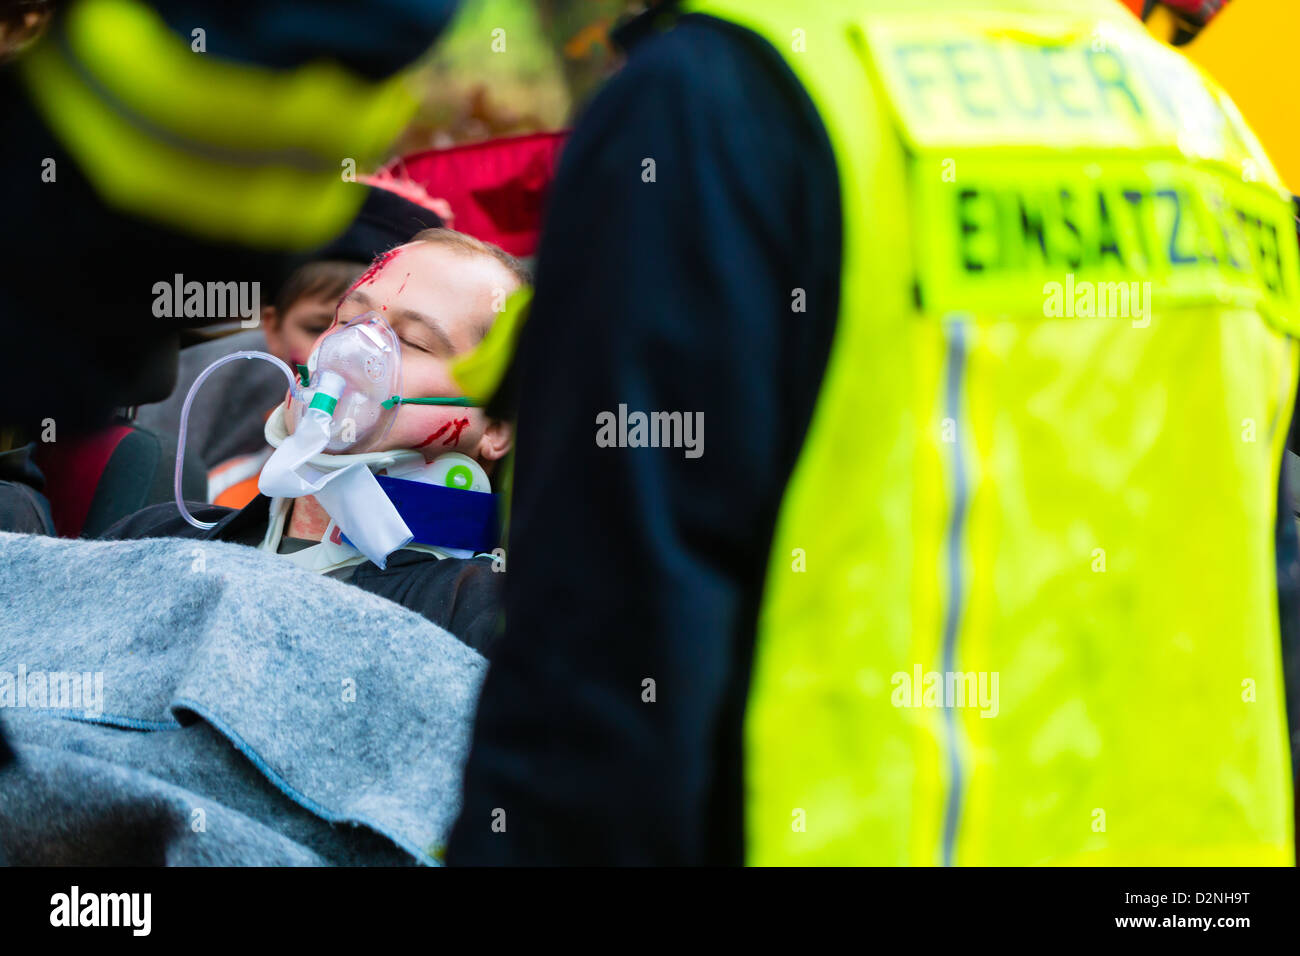 Accident - Fire brigade and Rescue team pulling cart with wounded person wearing a neck brace and respirator - Stock Image